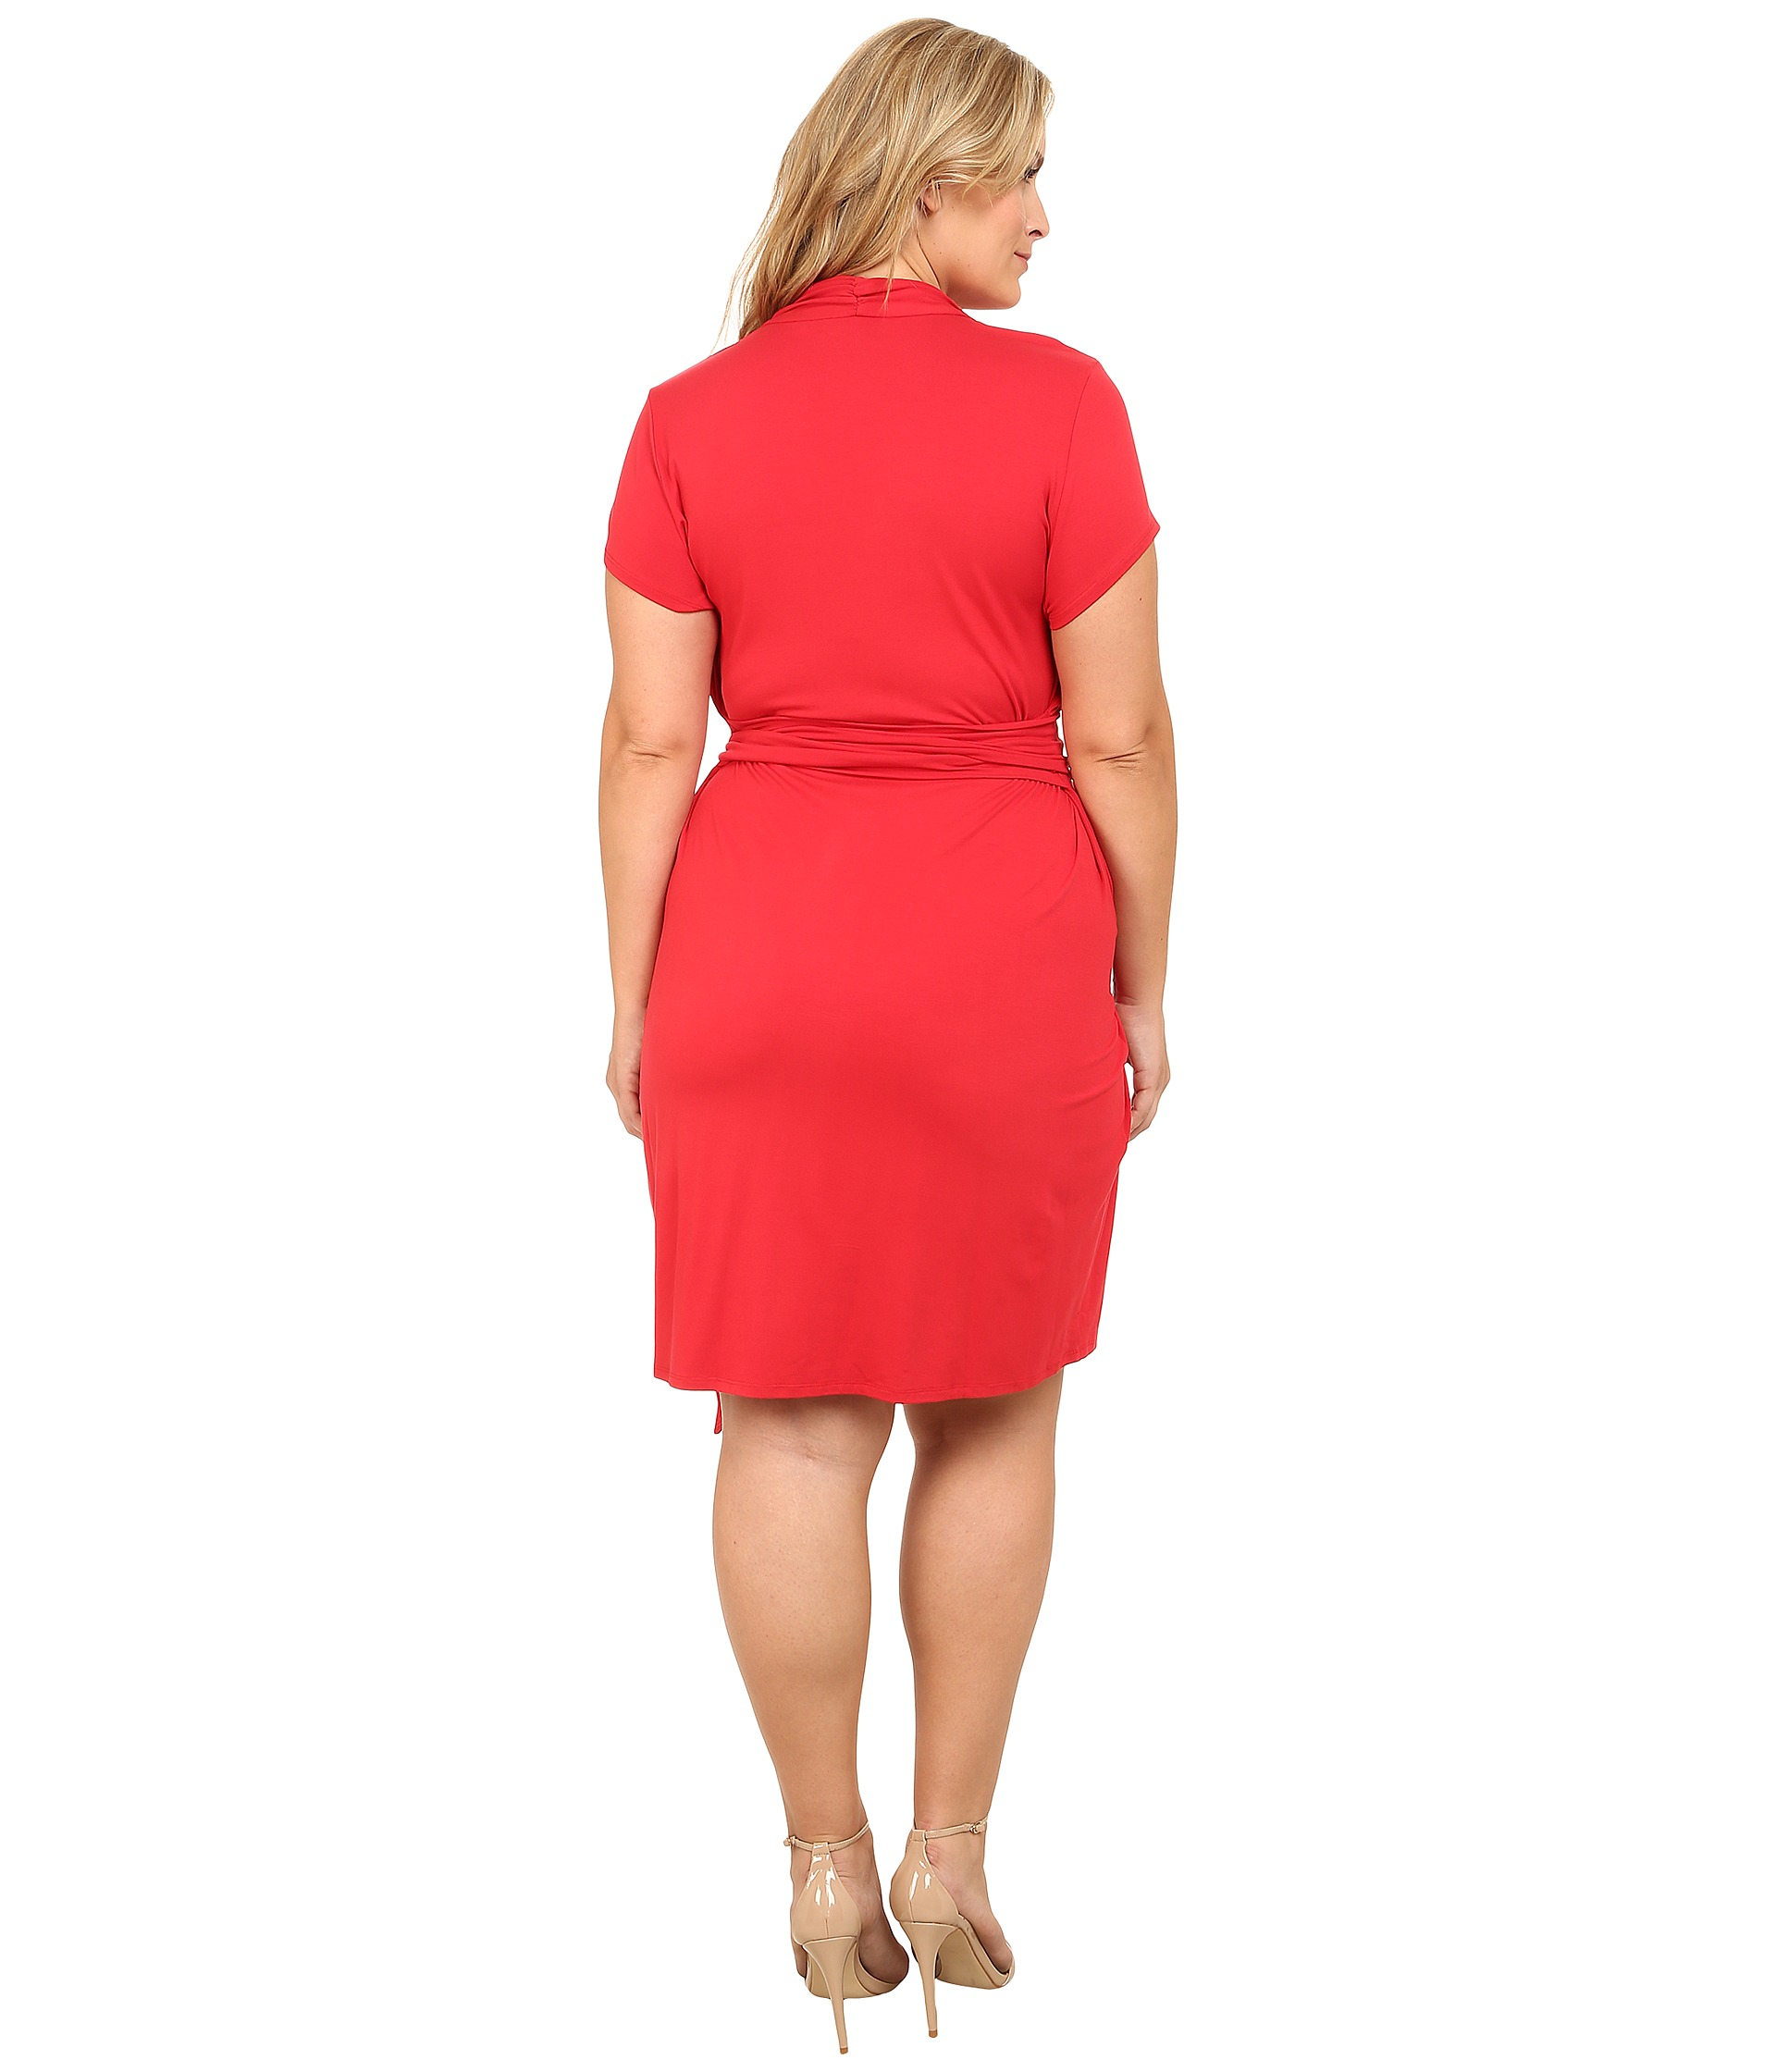 Adrianna papell Plus Size Short Sleeve Wrap Dress in Red - Lyst